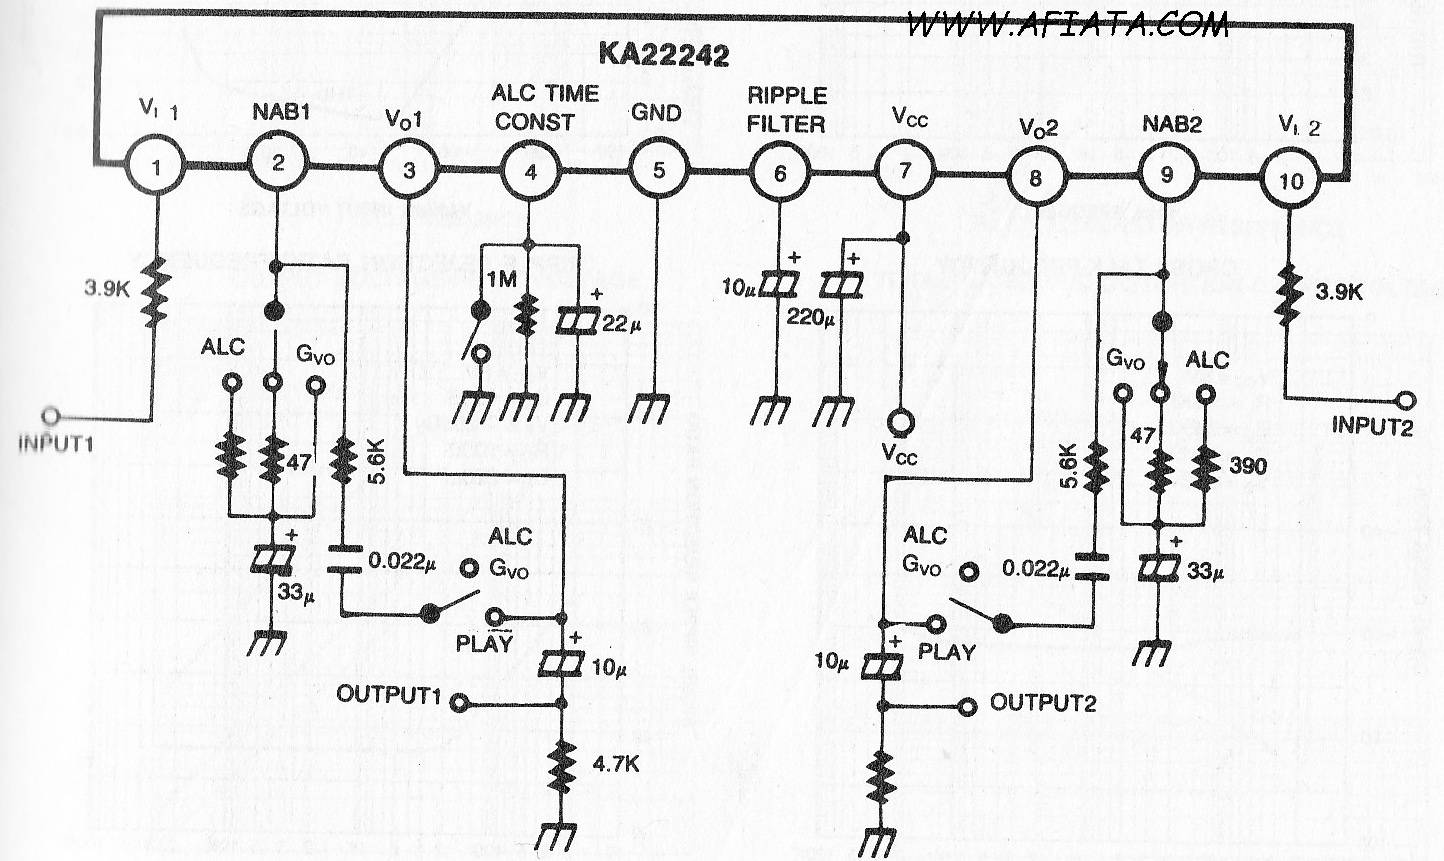 Audio Mixer Circuit Diagram